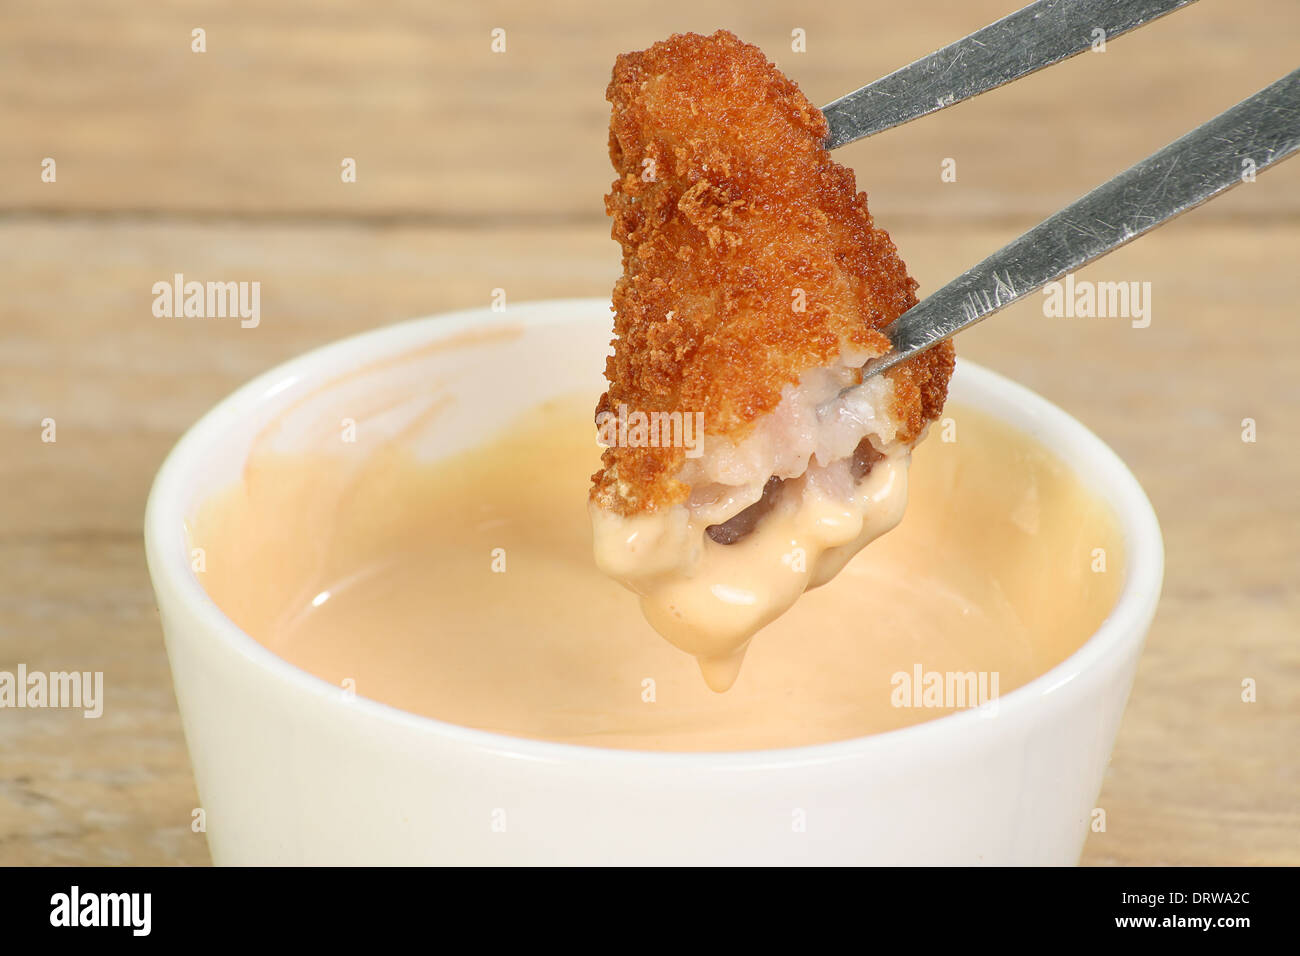 single breaded scampi dipped in seafood sauce Stock Photo